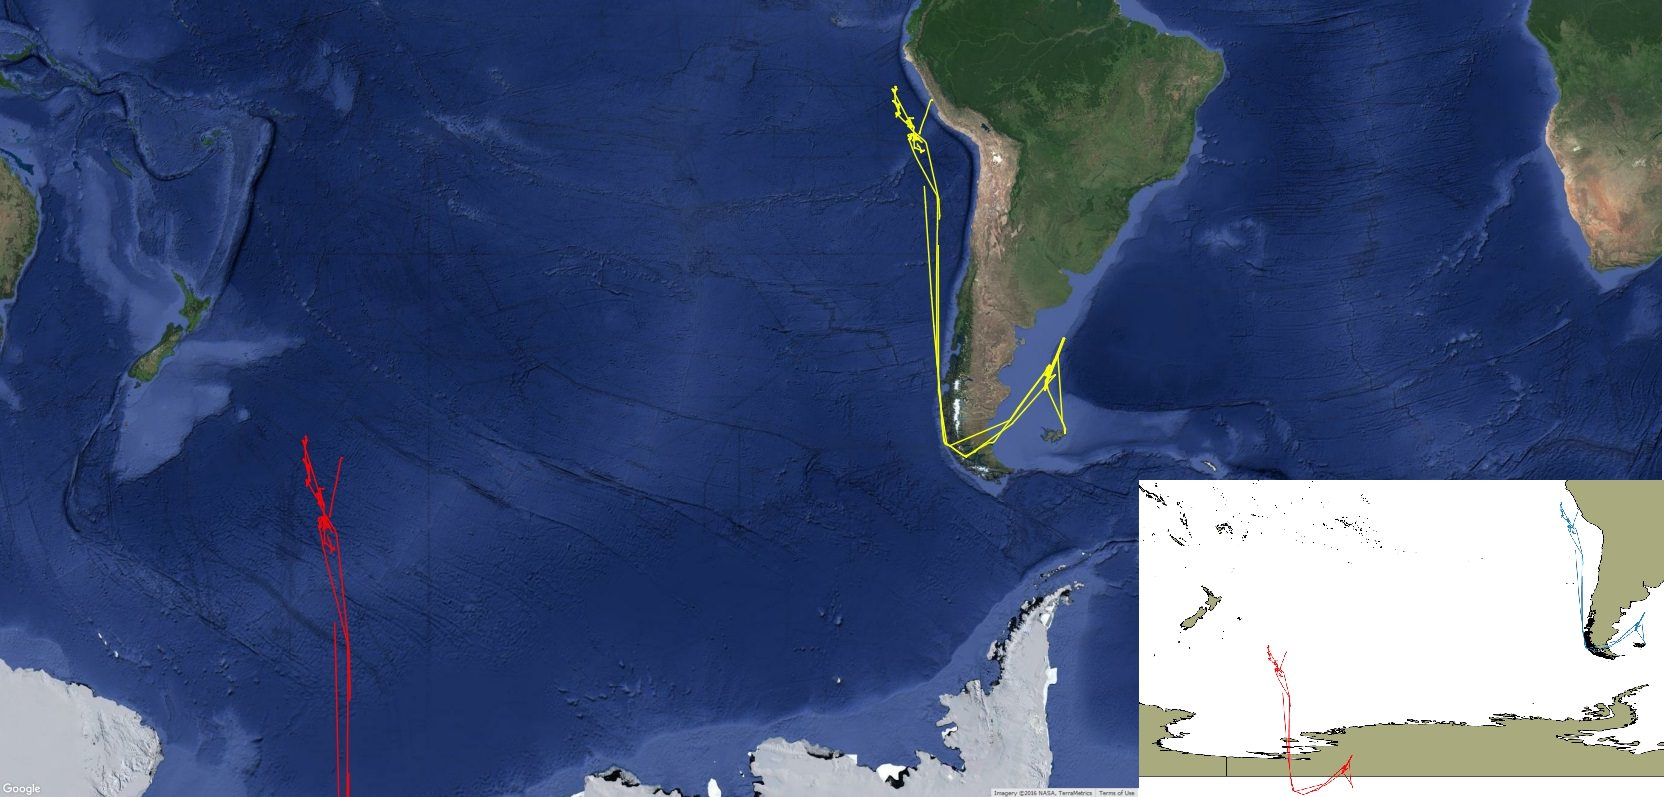 The red tracks show the broadcast position of the Lu Yan Yuan Yu 10 apparently transiting across Antarctica (inset). The yellow tracks show its true location along the coast of South America passing through the Strait of Magellan and into port at Lima, Peru.